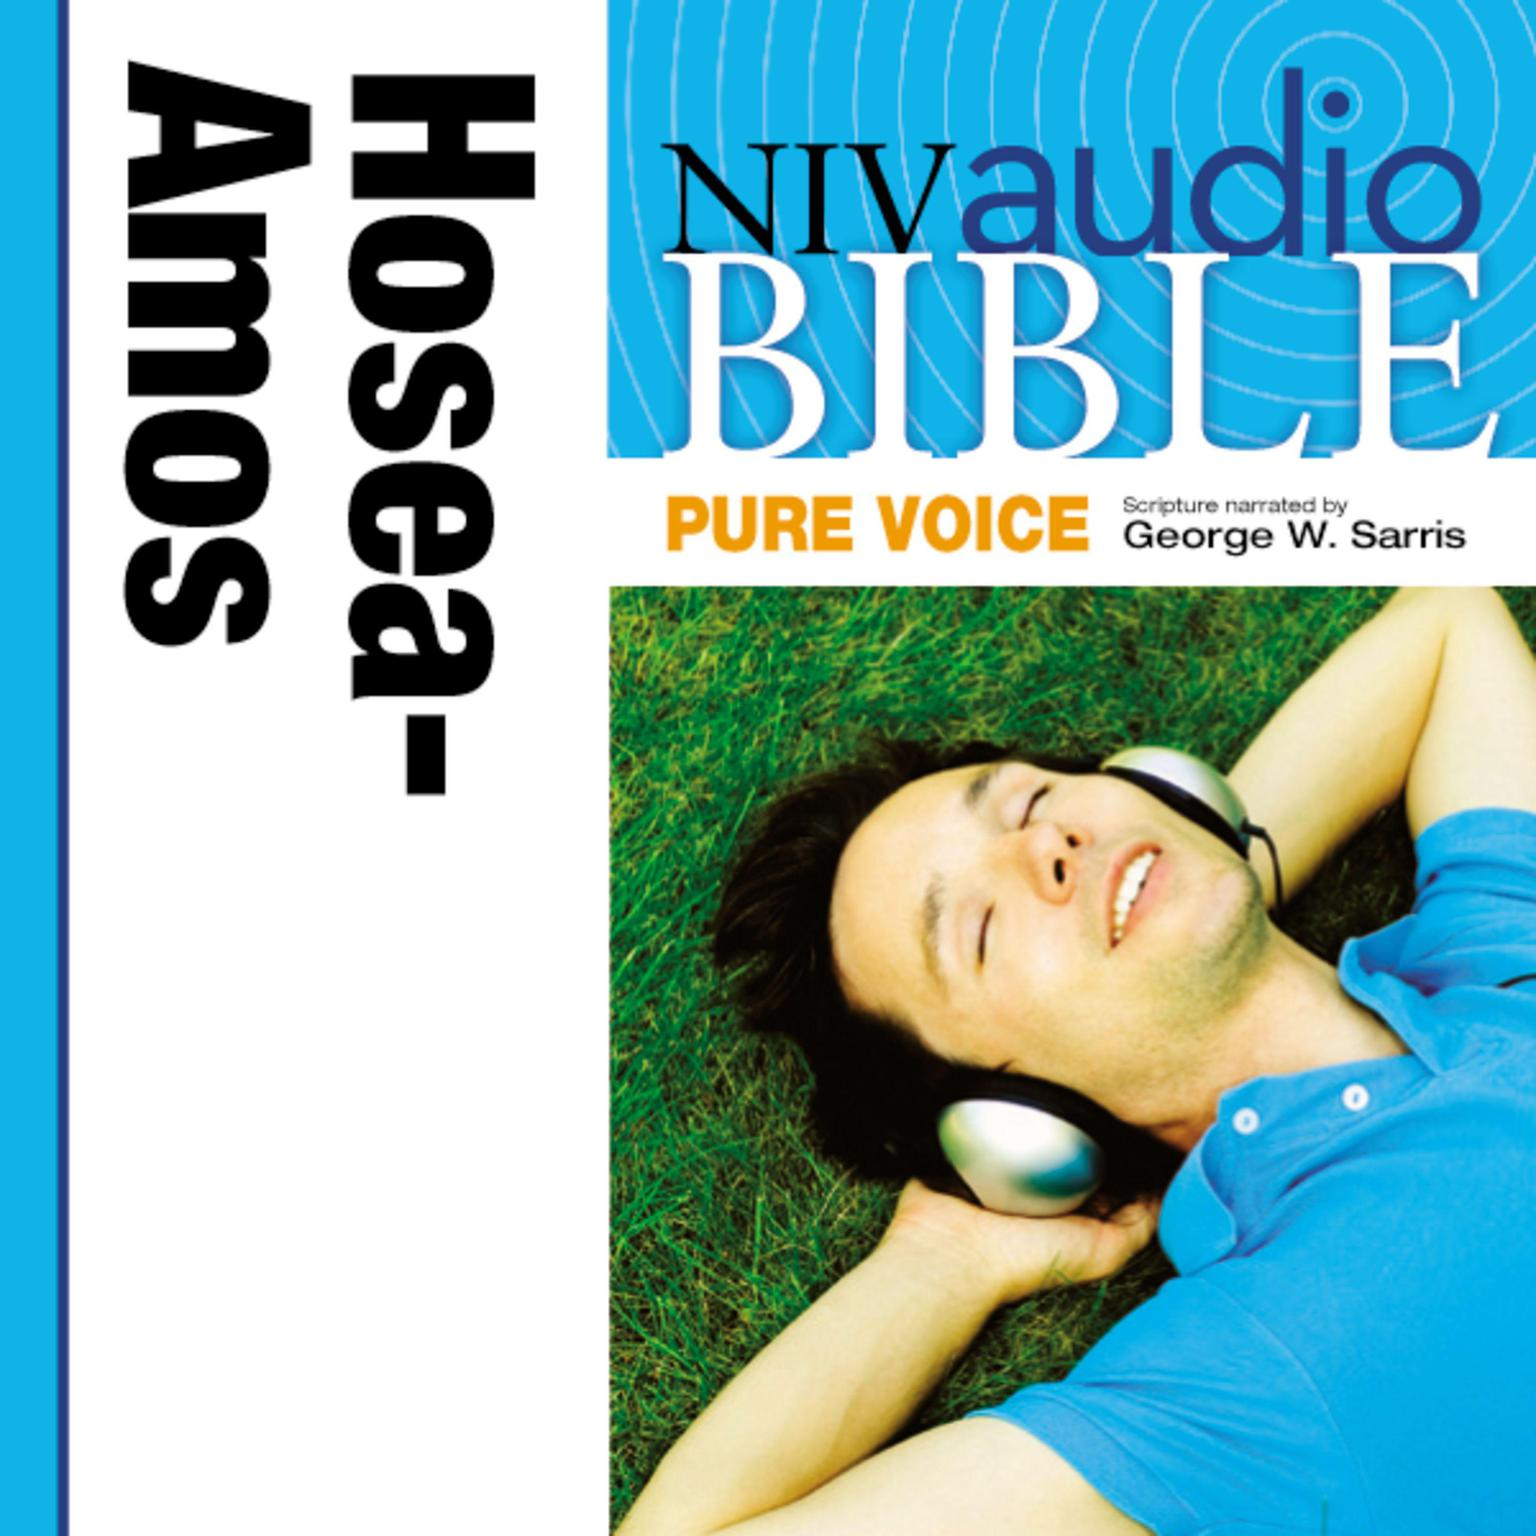 Printable NIV, Audio Bible, Pure Voice: Hosea, Joel, and Amos, Audio Download (Narrated by George W. Sarris) Audiobook Cover Art